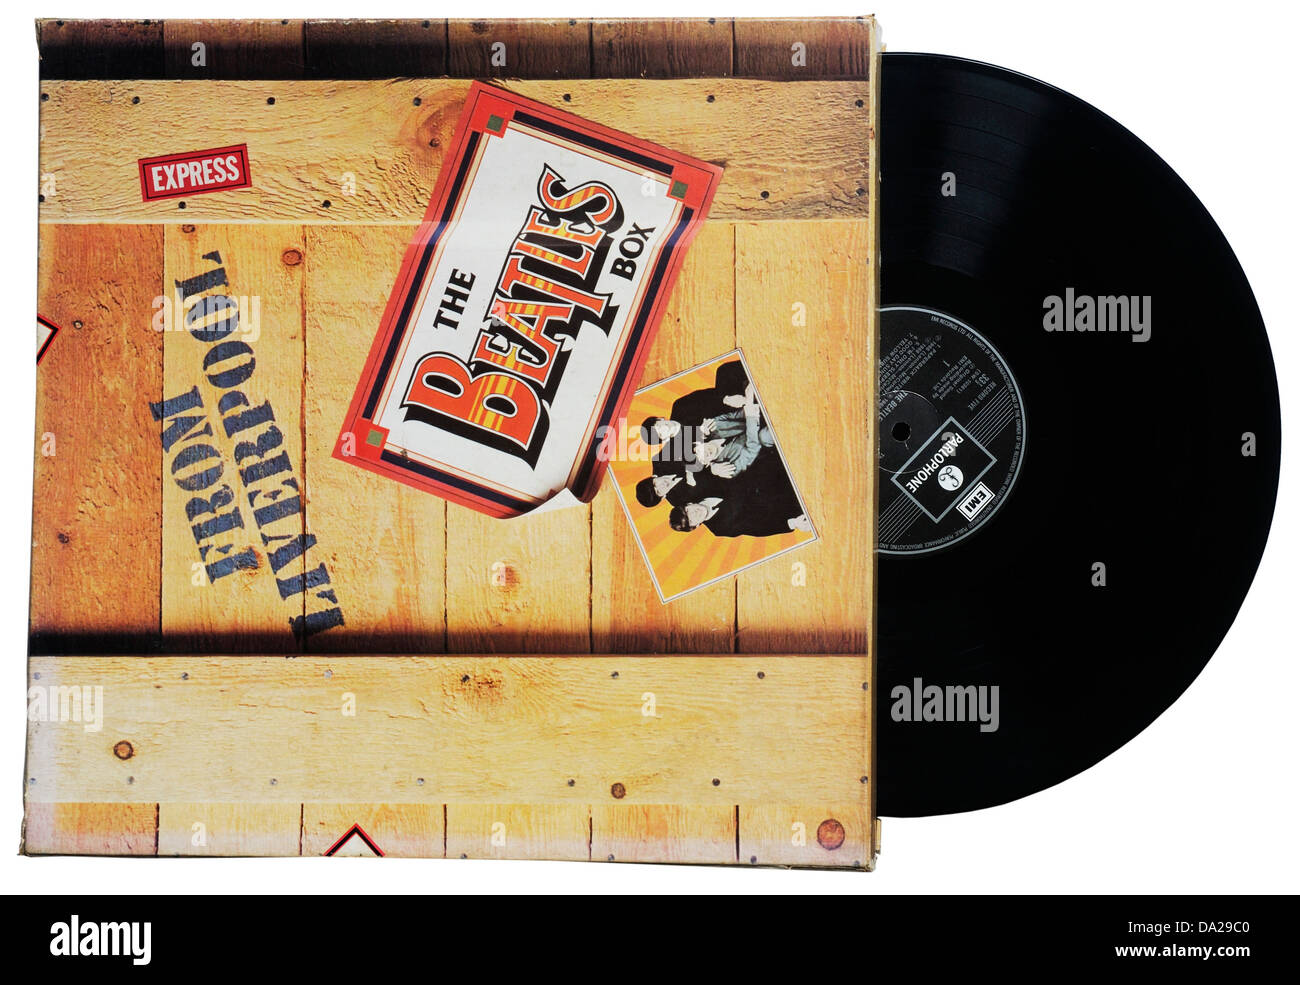 The Beatles Box compilation album - Stock Image